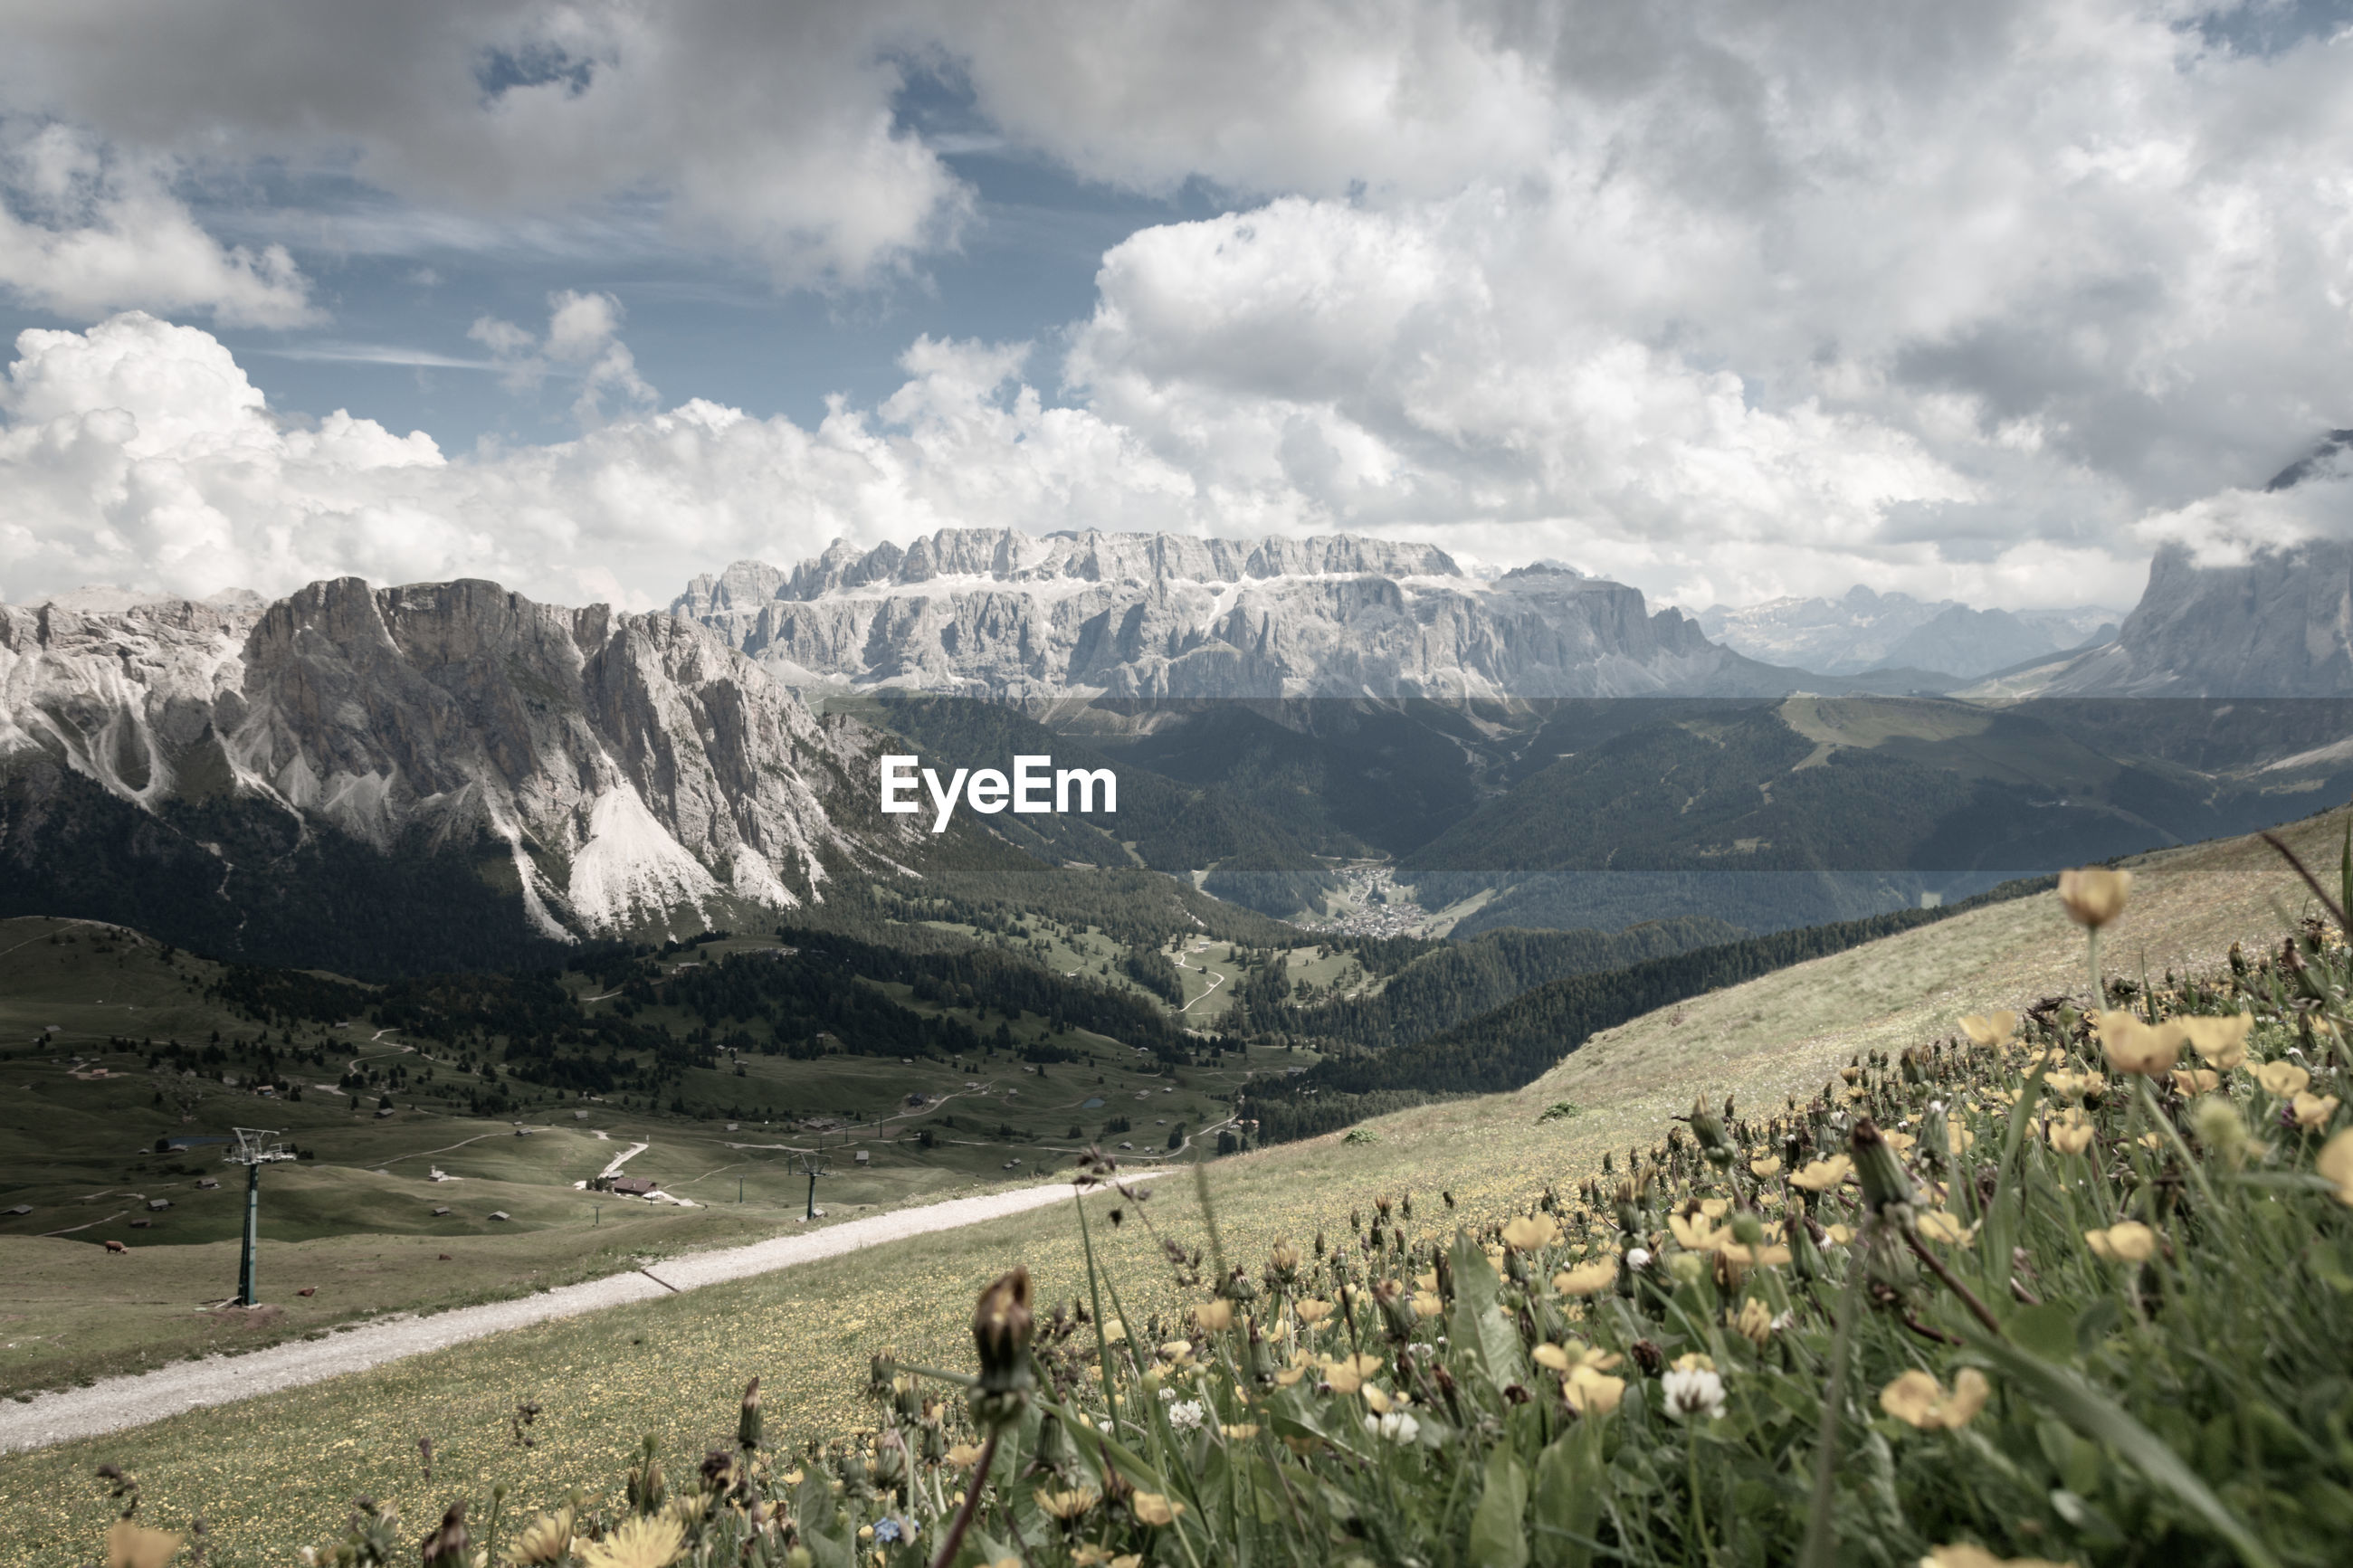 Scenic view of sella group mountains with flowers in the foreground against cloudy sky in retro styl